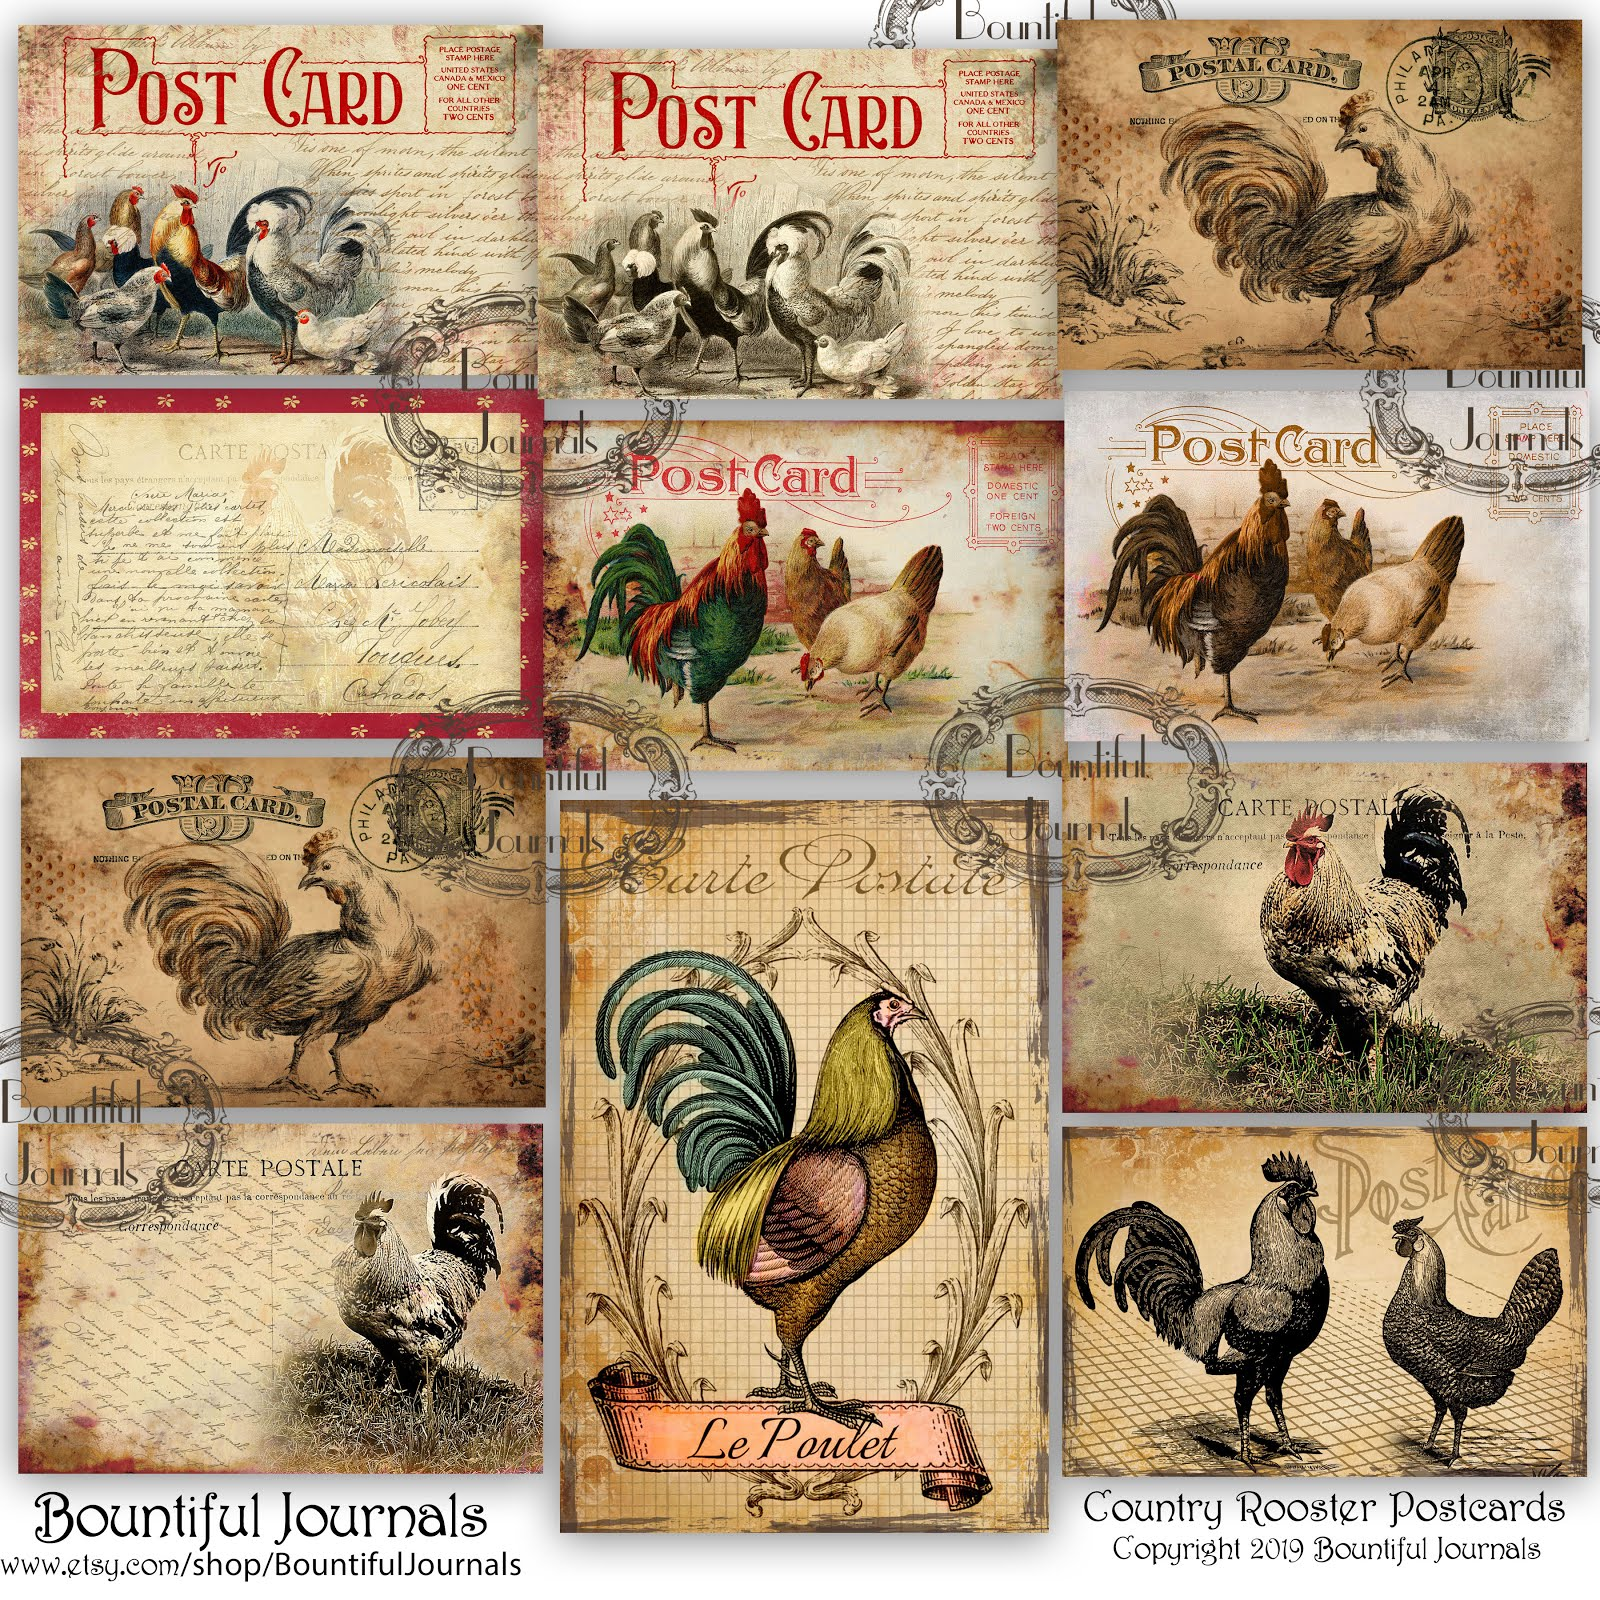 French Country Rooster Postcards